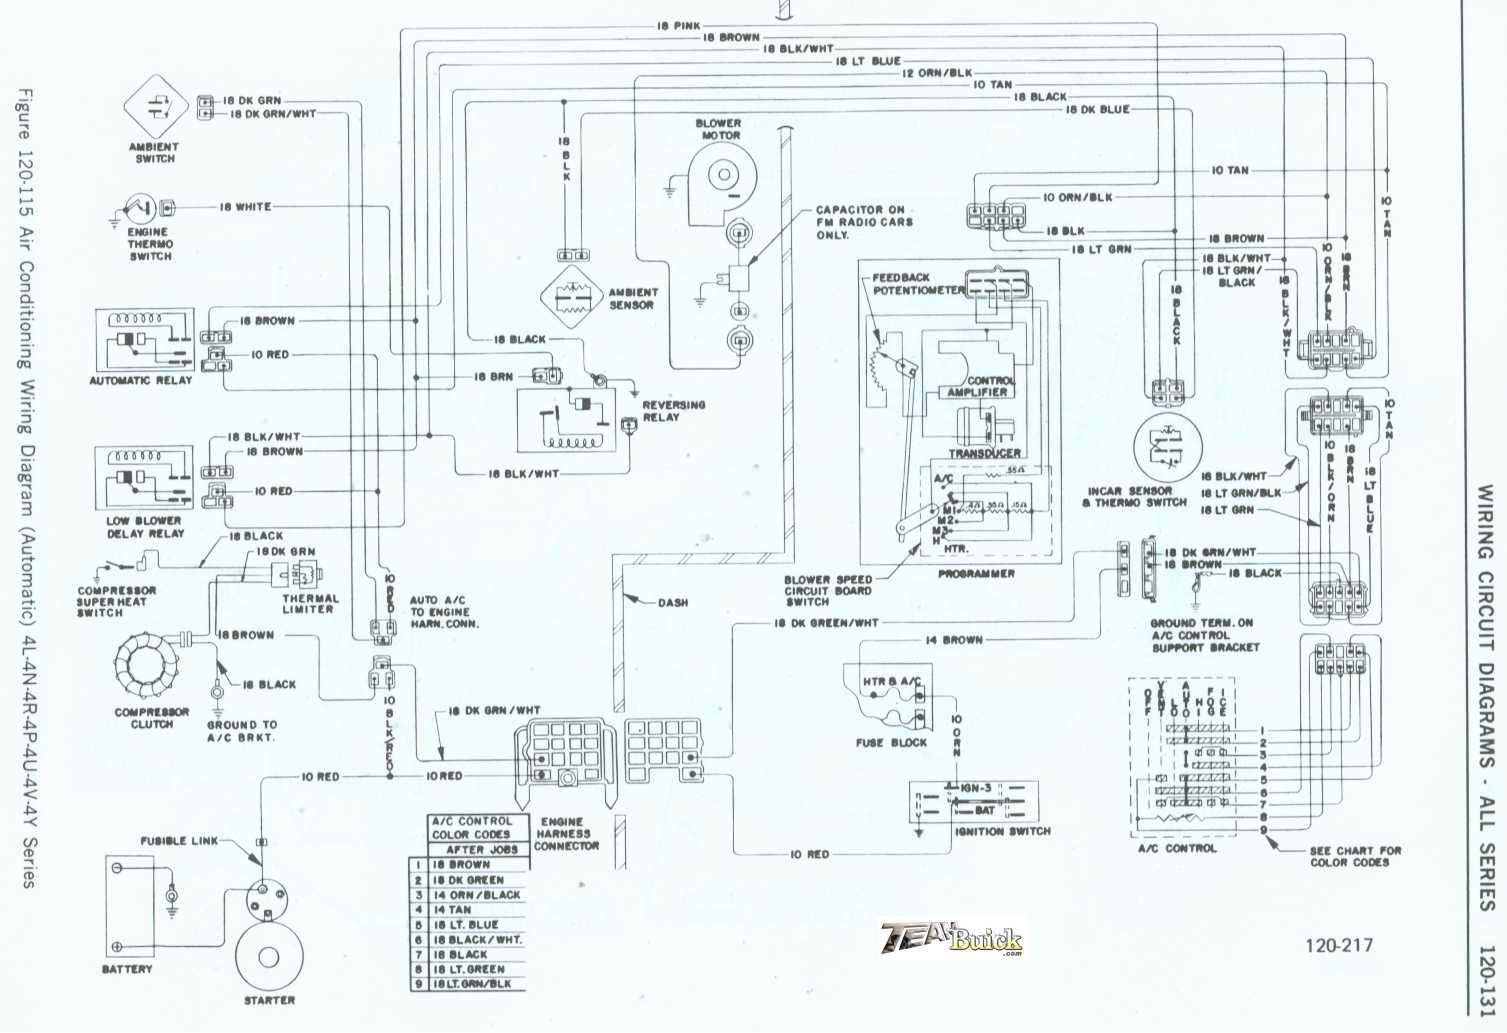 1972 Buick, Air Conditioner Wiring Diagram (Automatic) 4L